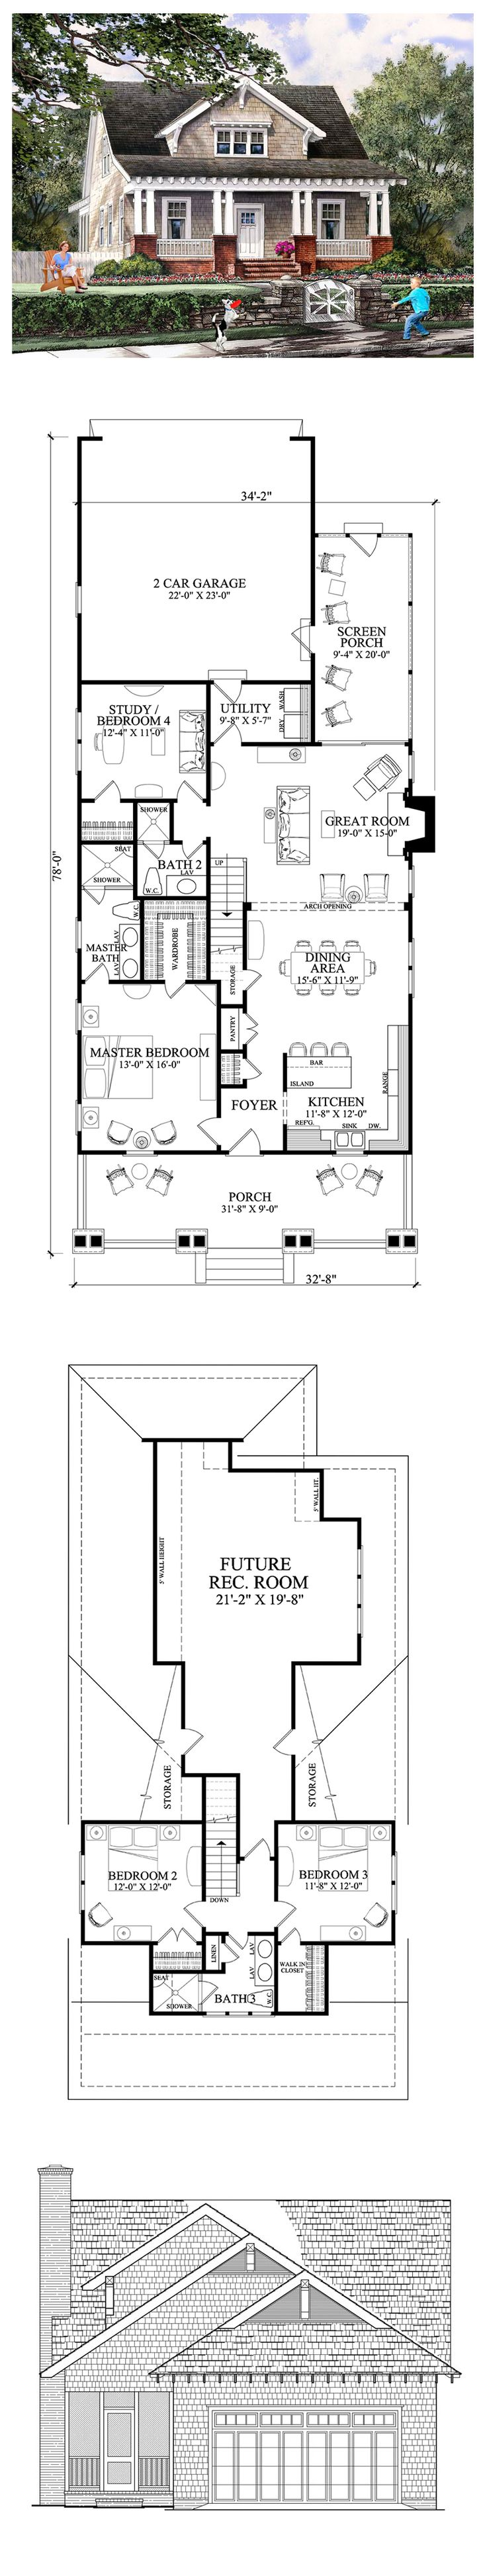 best 25 small house plans ideas on pinterest small house floor bungalow house plan 86121 total living area 1907 sq ft 4